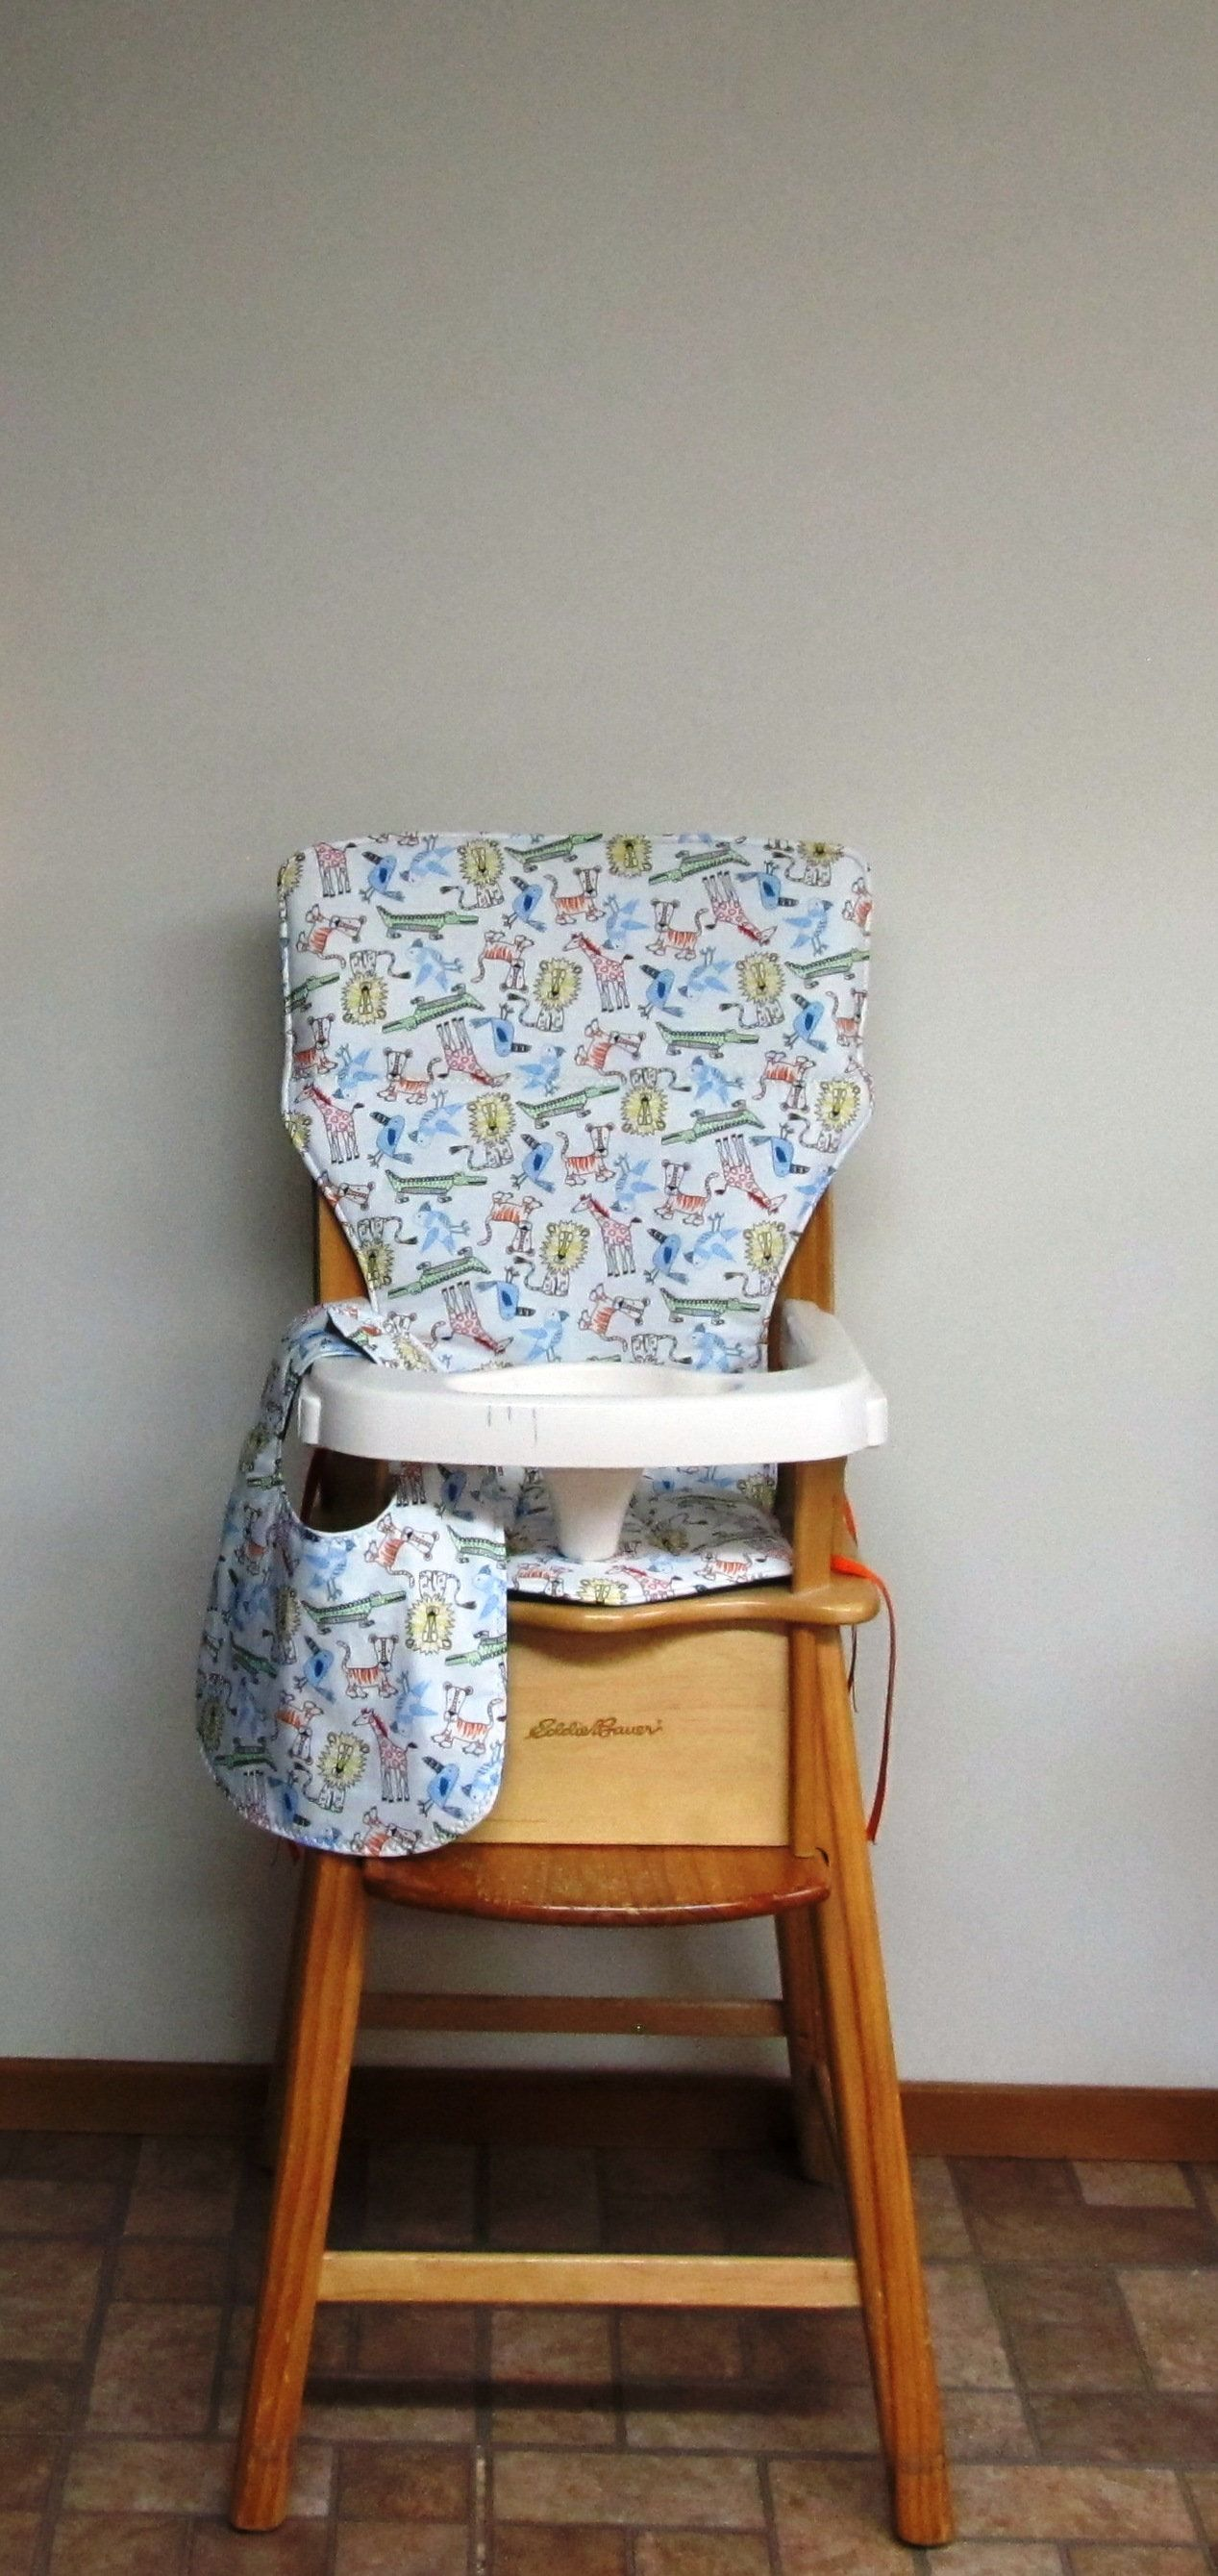 Eddie Bauer Custom Wooden High Chair Pad Color Me Jungle With